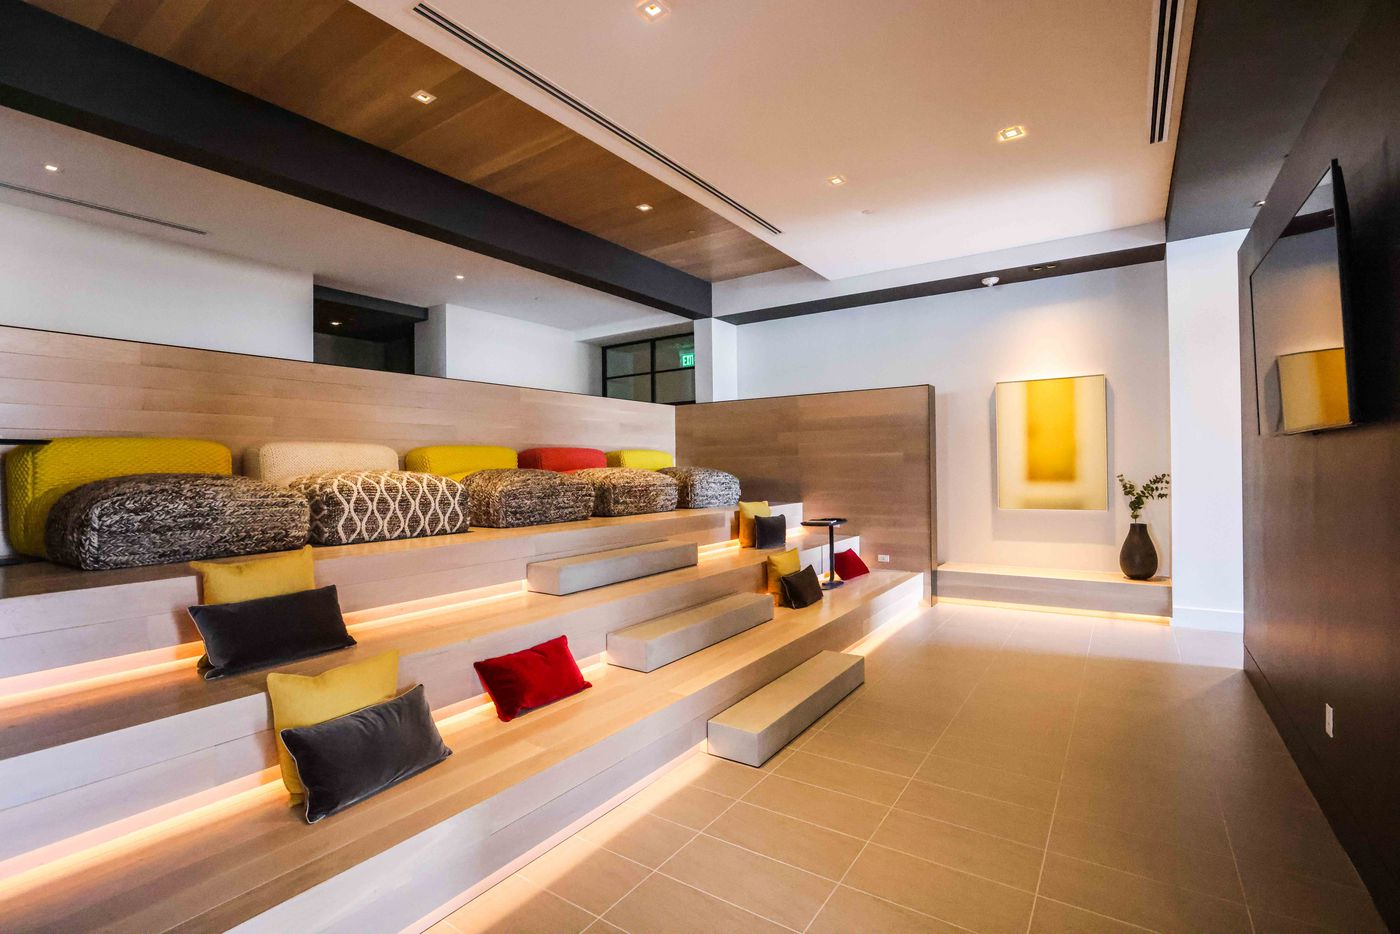 A TV lounge area at The Victor. (Lola Gomez/The Dallas Morning News)